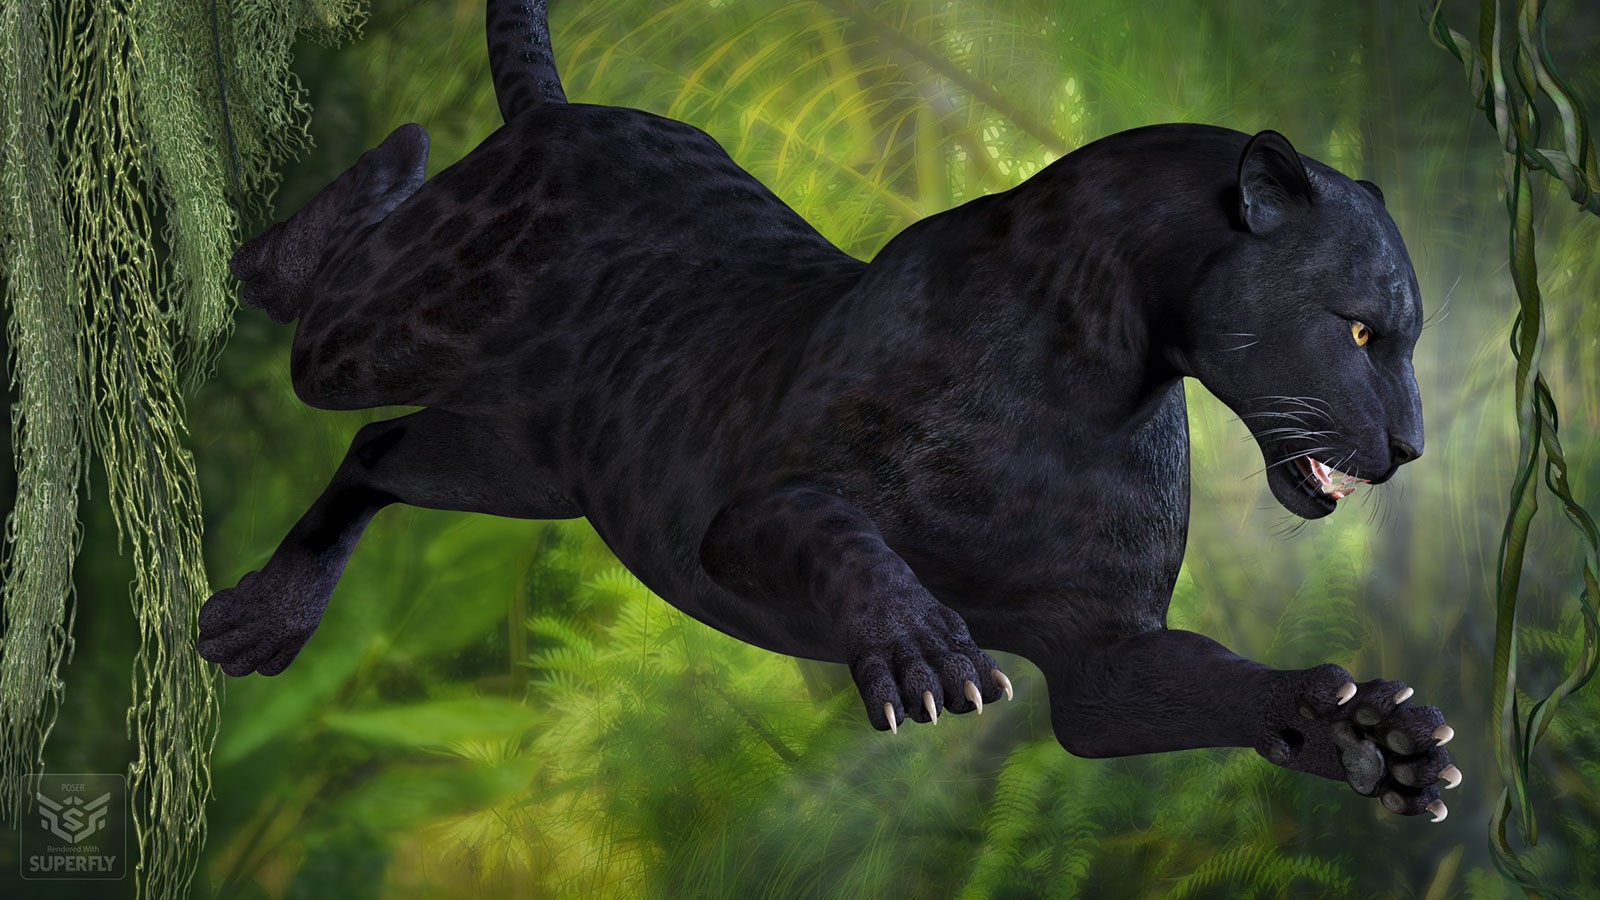 Create Animated Wallpaper Cwrw Black Panther For The Hivewire Big Cat 3d Figure